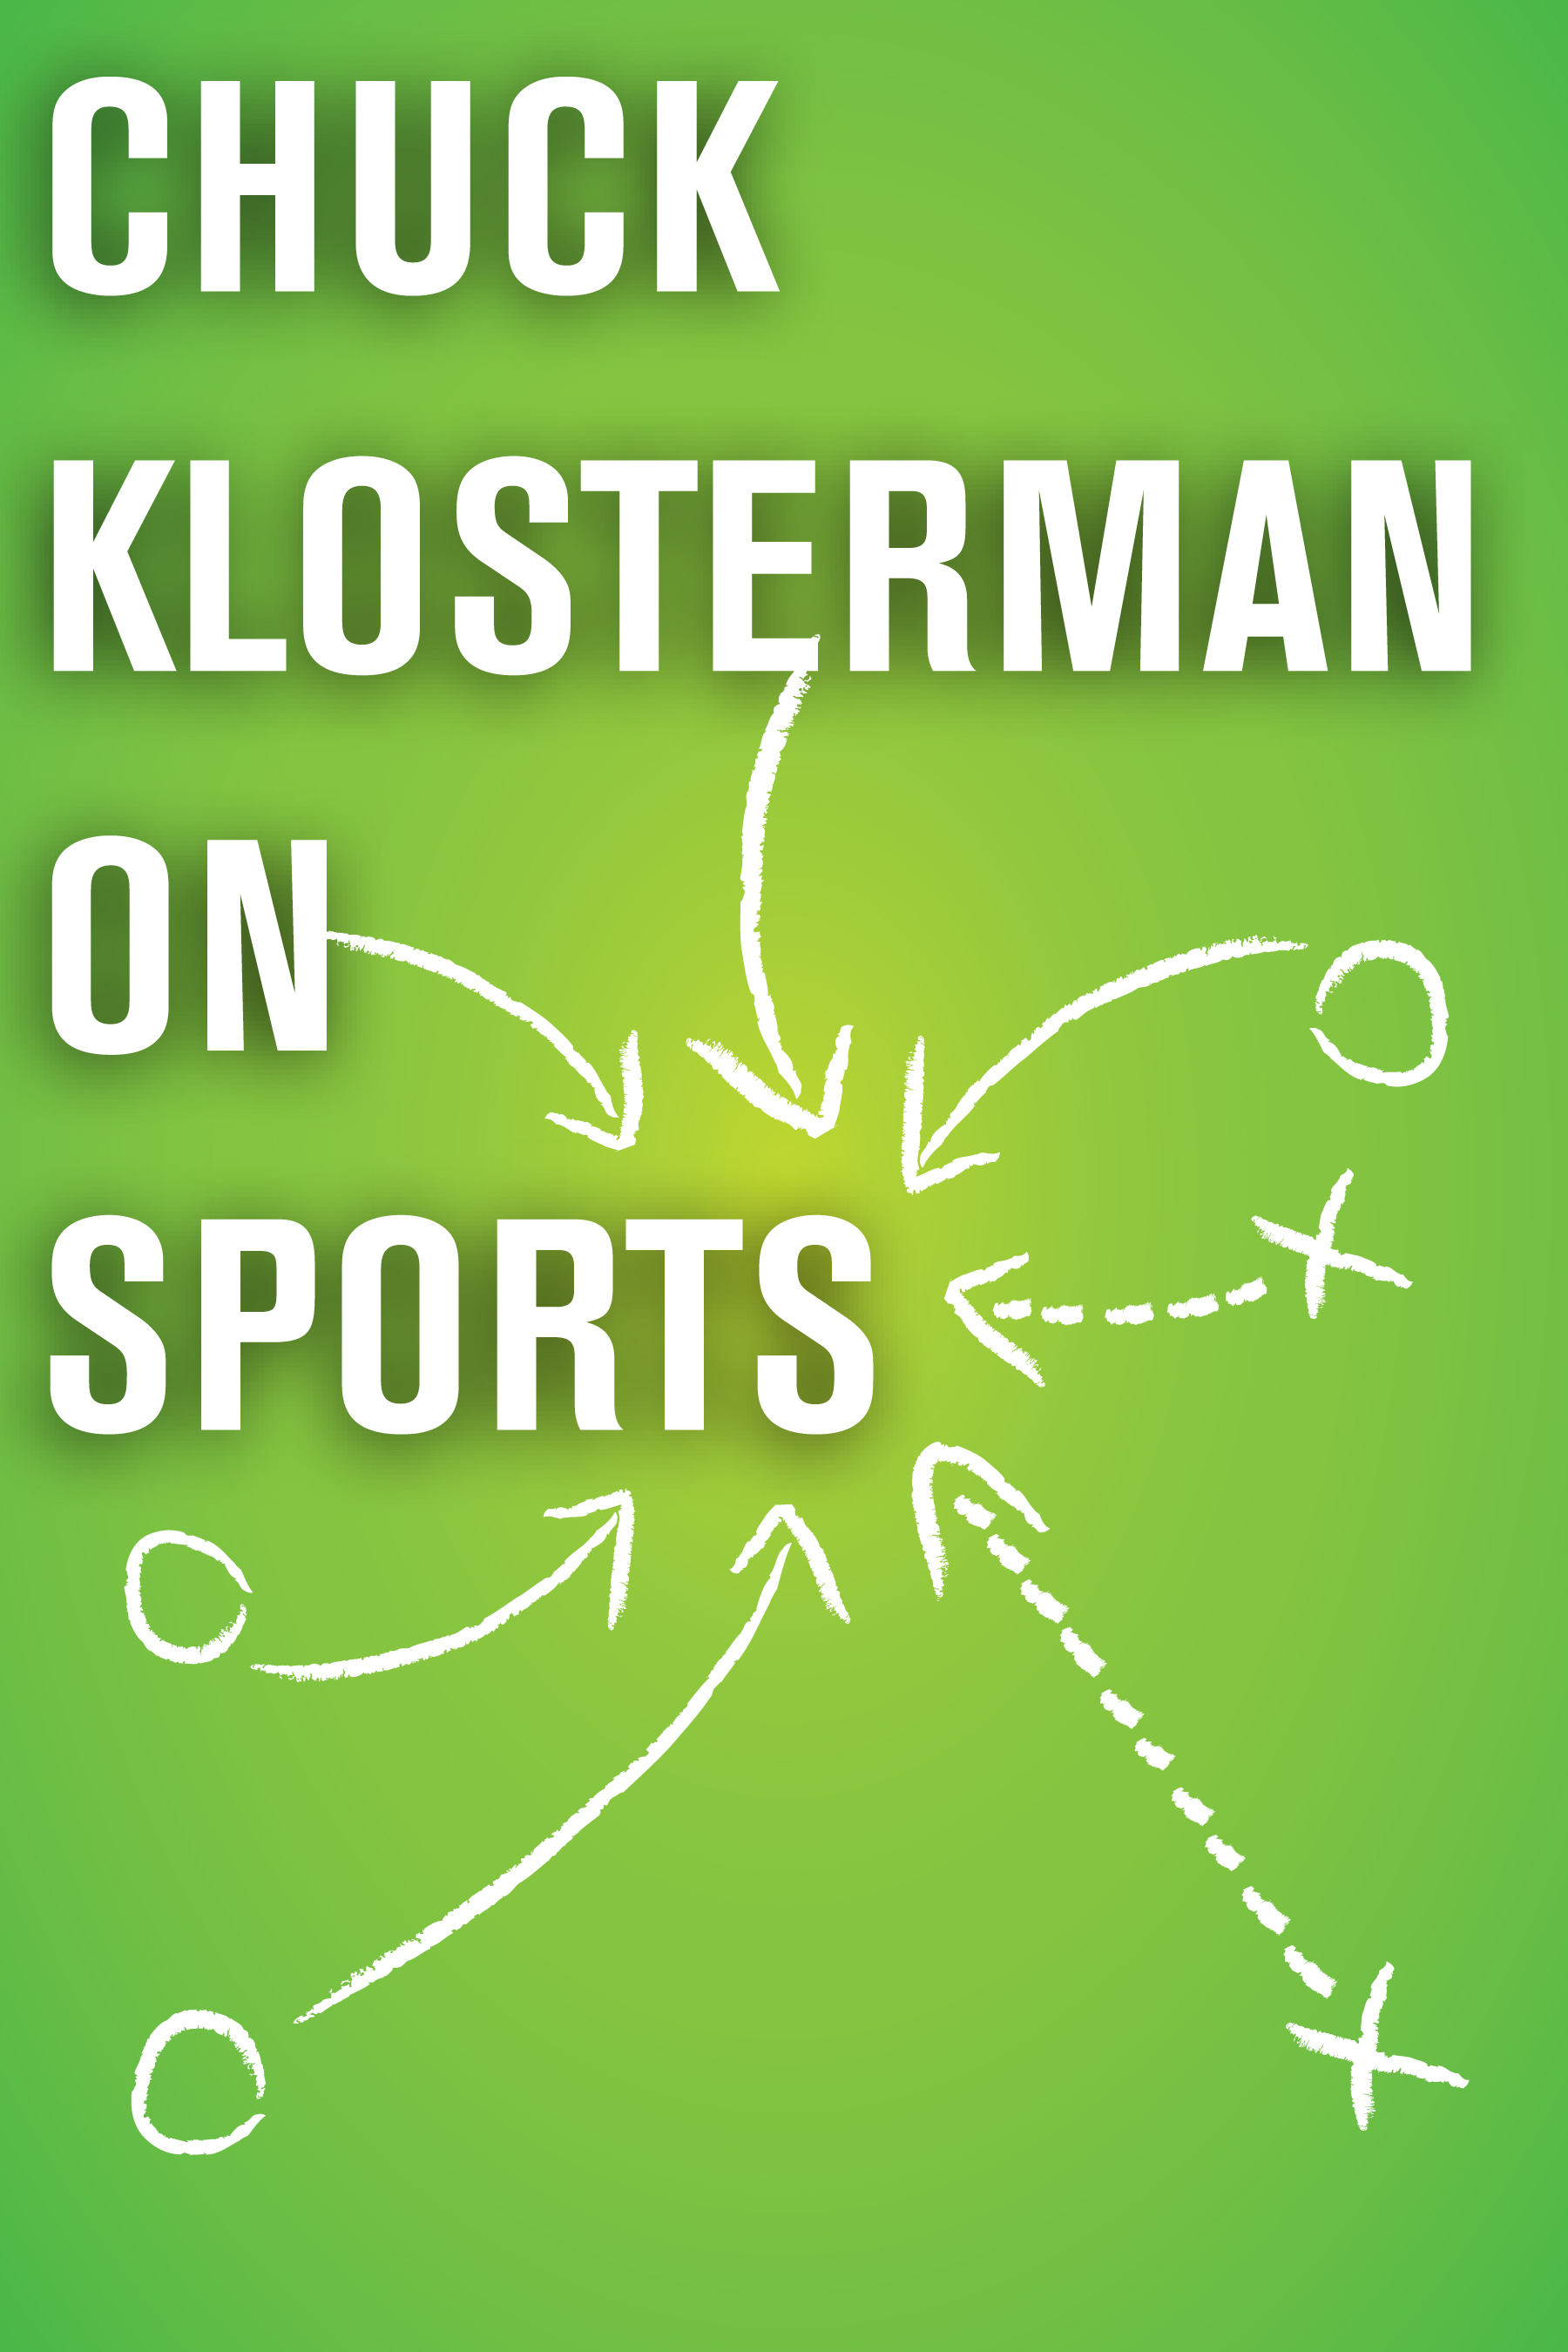 chuck klosterman essay soccer And when the new republic's howard wolfson raised it again sunday it  reminded the wire of an essay in chuck klosterman's 2004 book sex,.